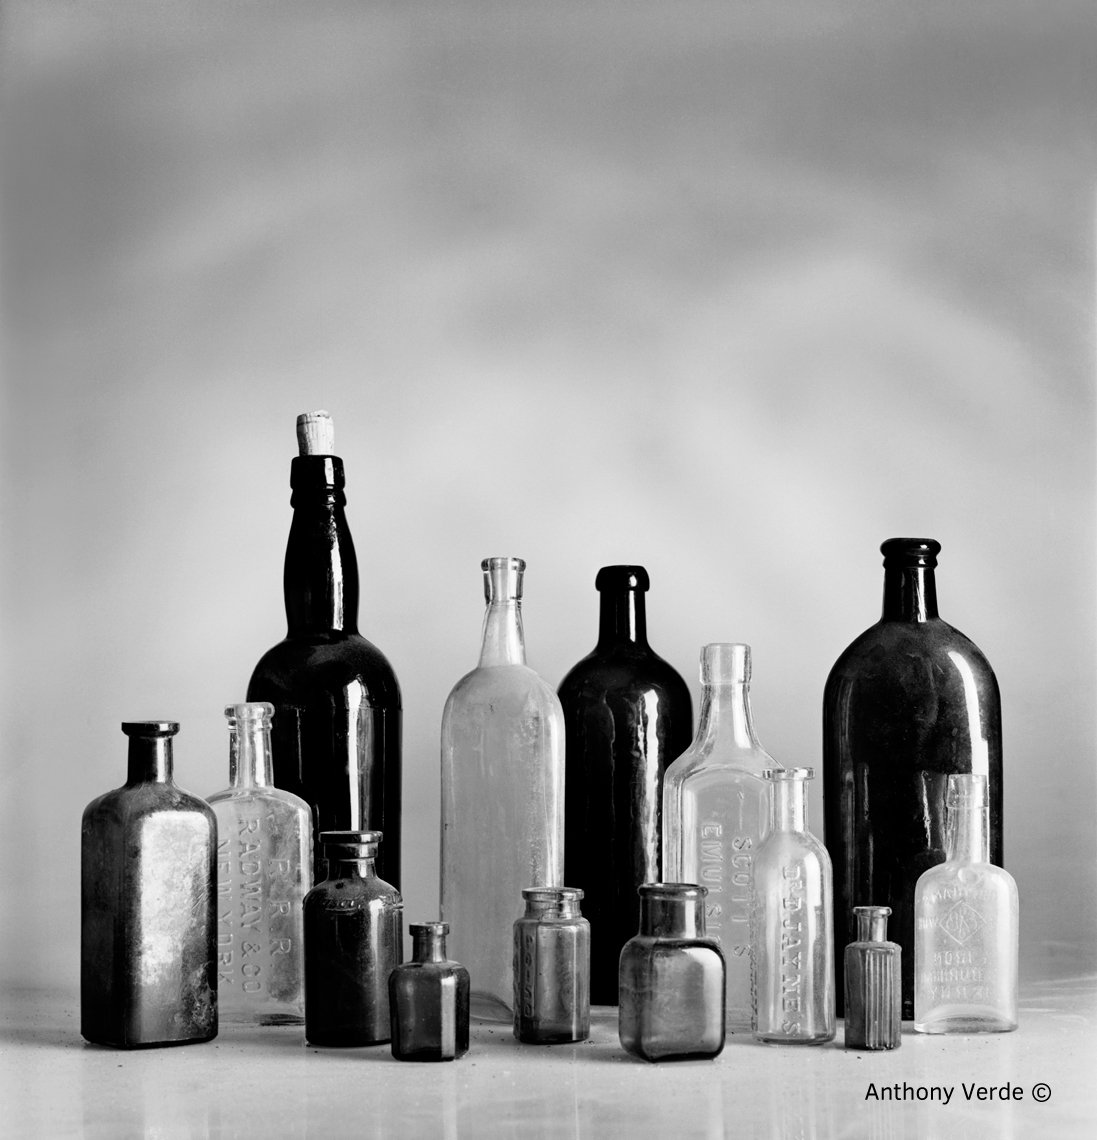 Antique--Bottles-on-Table